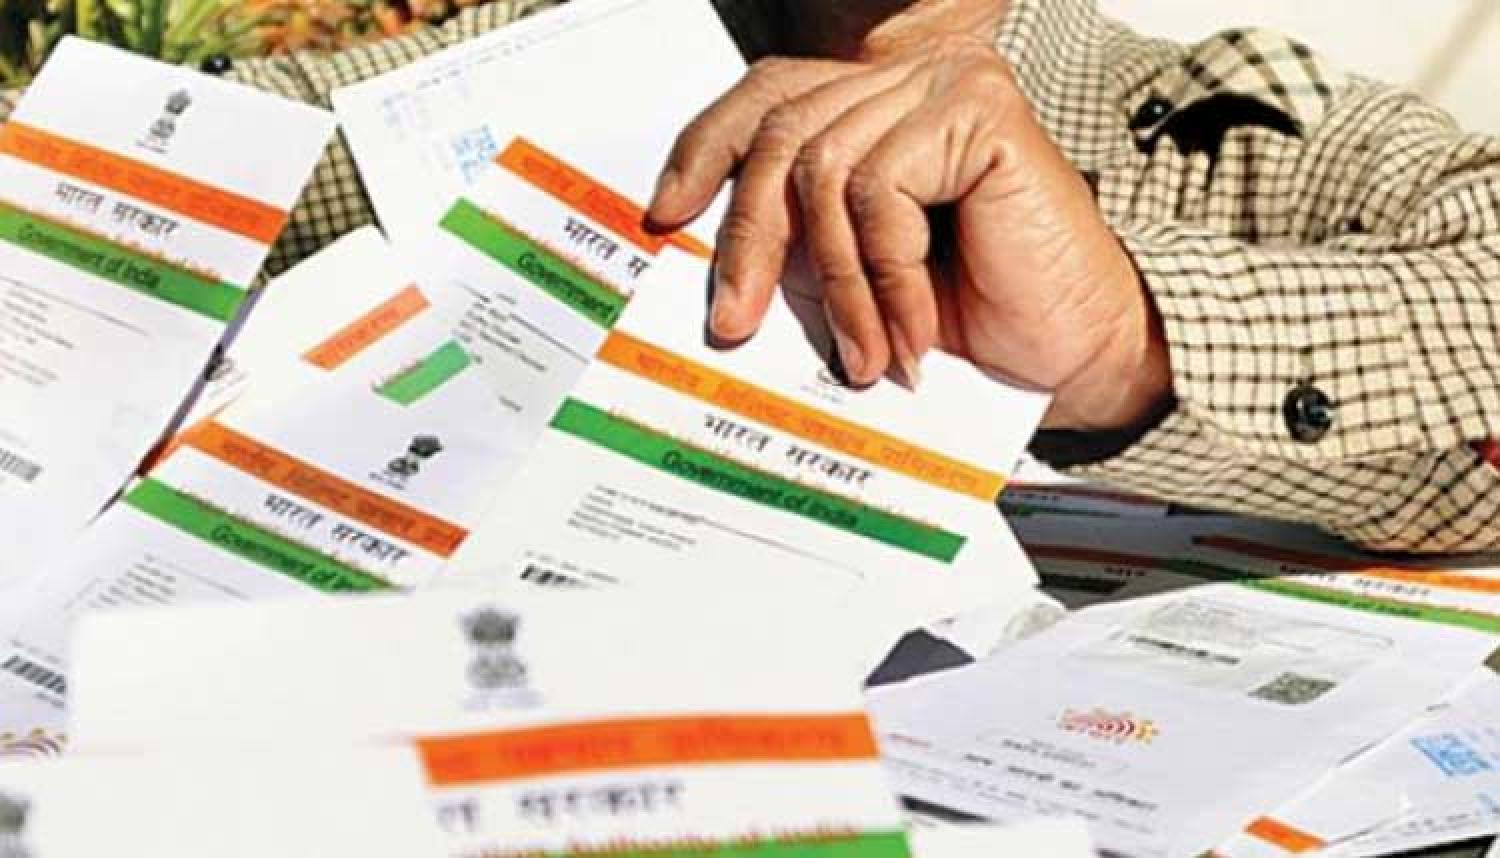 Govt extends deadline for linking Aadhaar with bank accounts to March 31